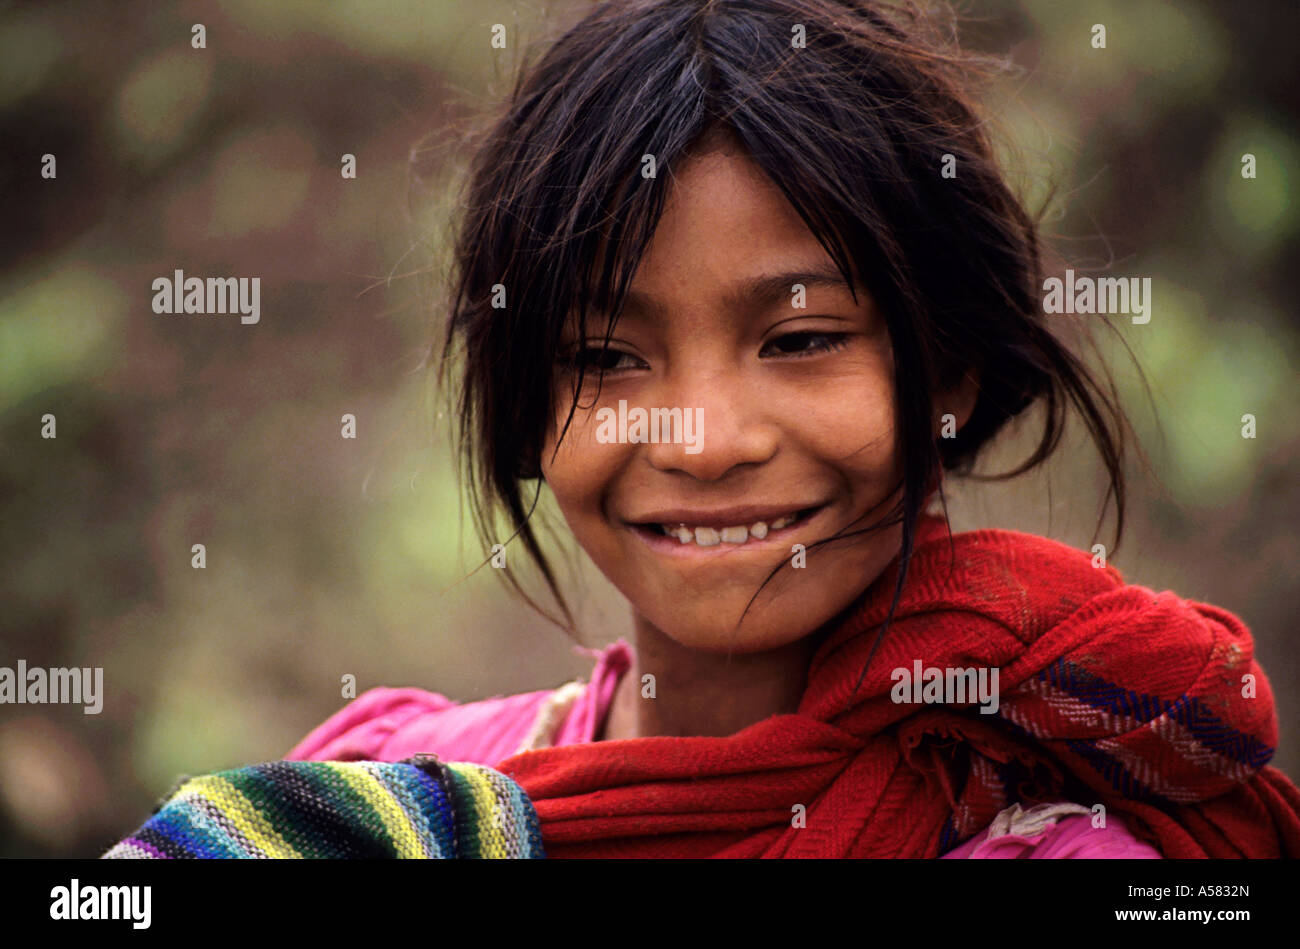 Portrait of a smiling Guatemalan girl at a refugee camp, Chiapas, Mexico. - Stock Image